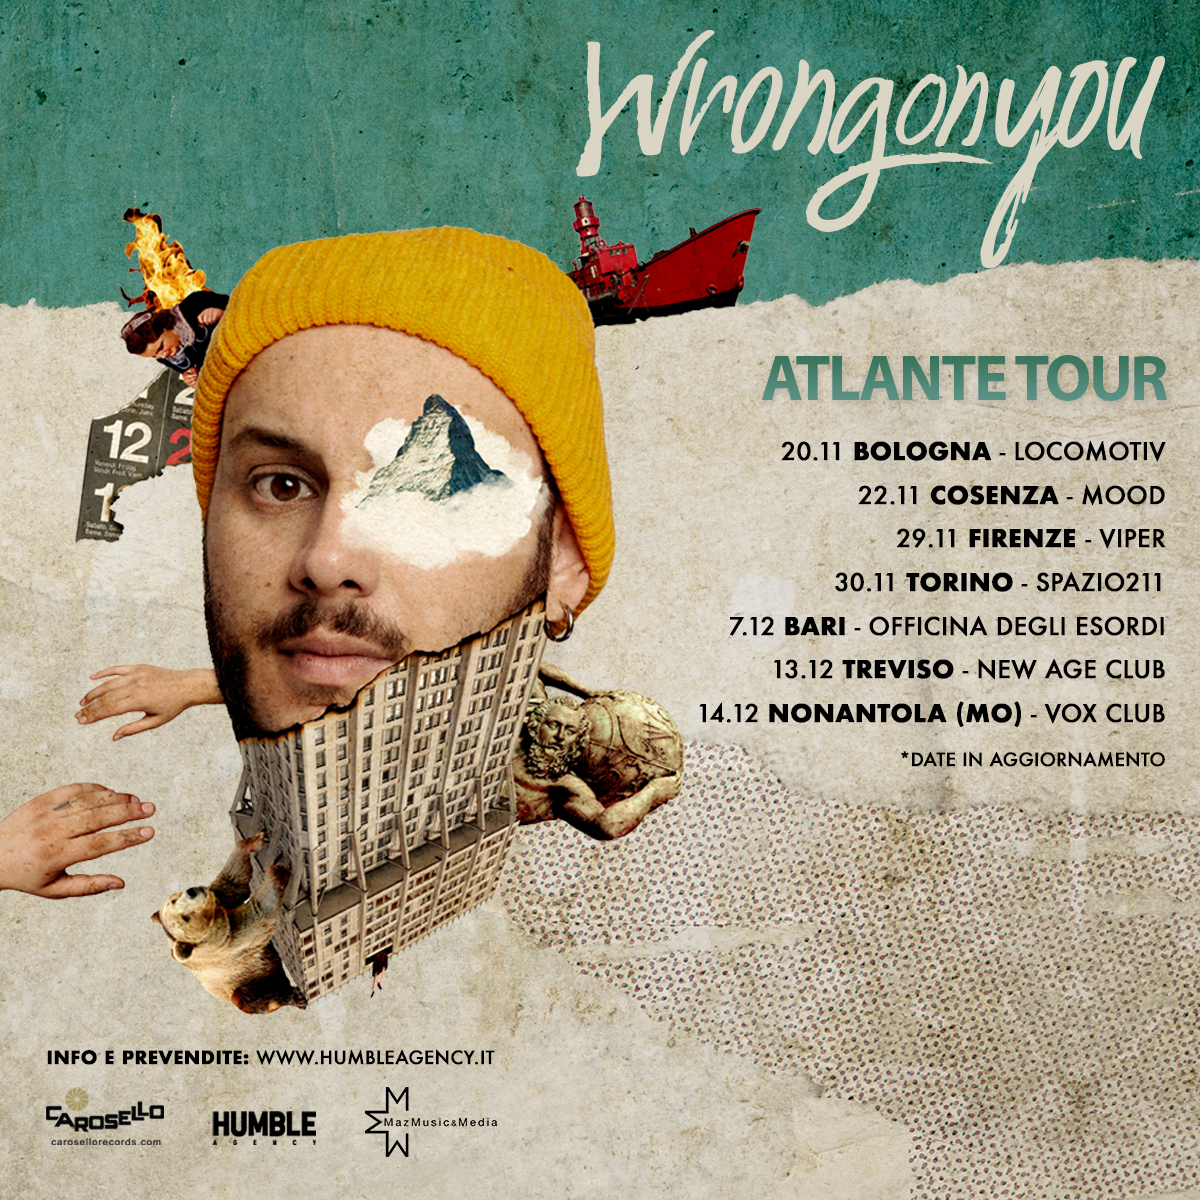 wrongonyou-atlante-tour_1200x1200